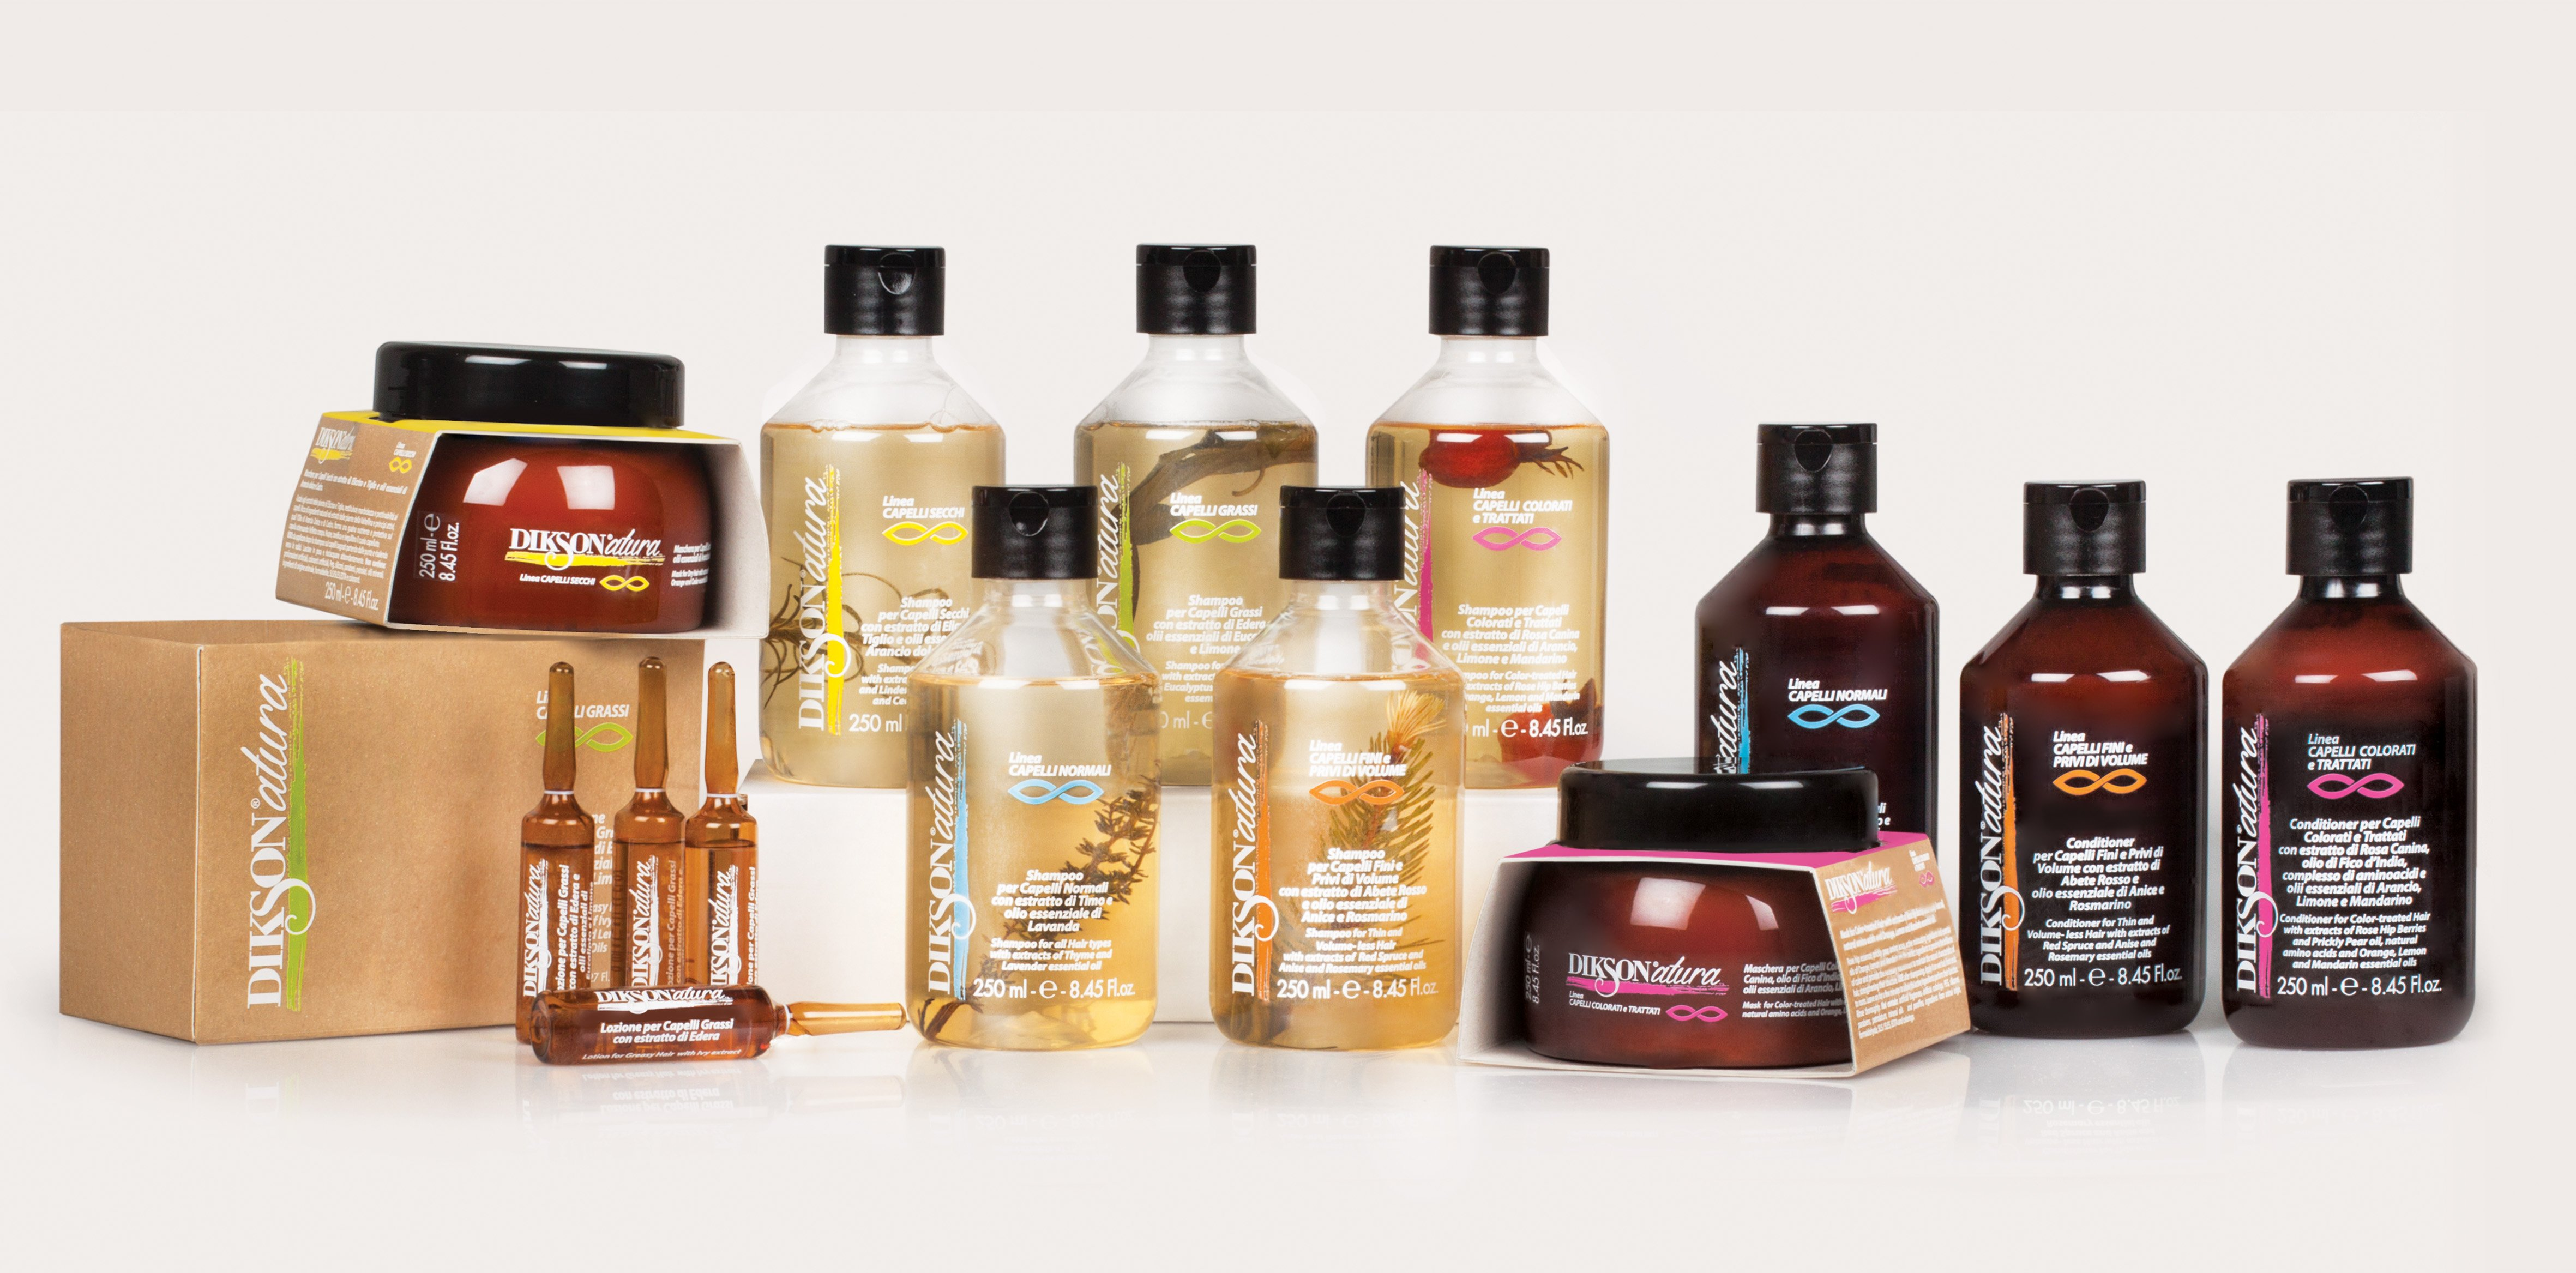 DiksoNatura Hair Care Puts a Focus on Natural Ingredients and Sustainable Practices